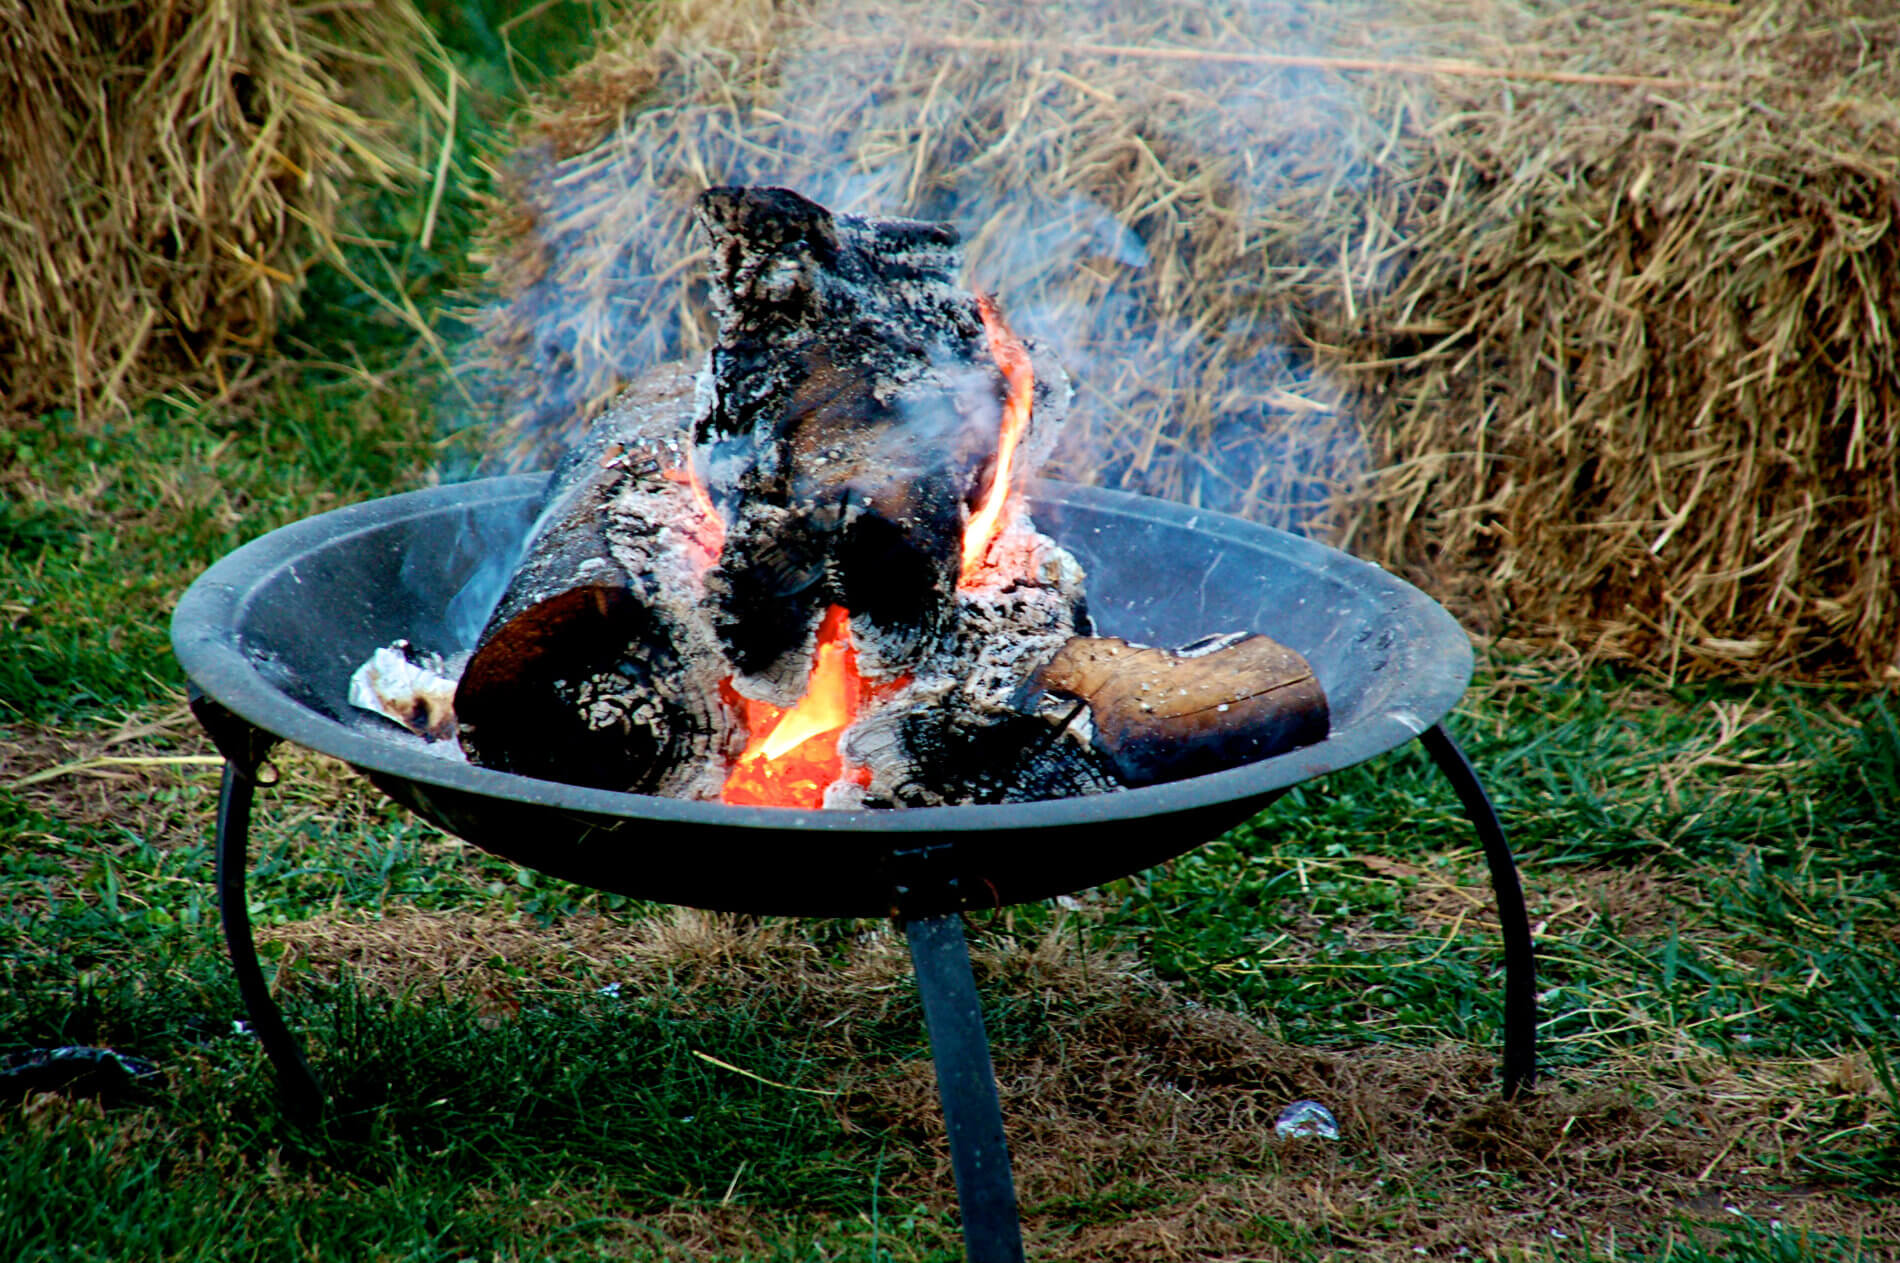 Black iron fire pit with crackling fire in green lawn